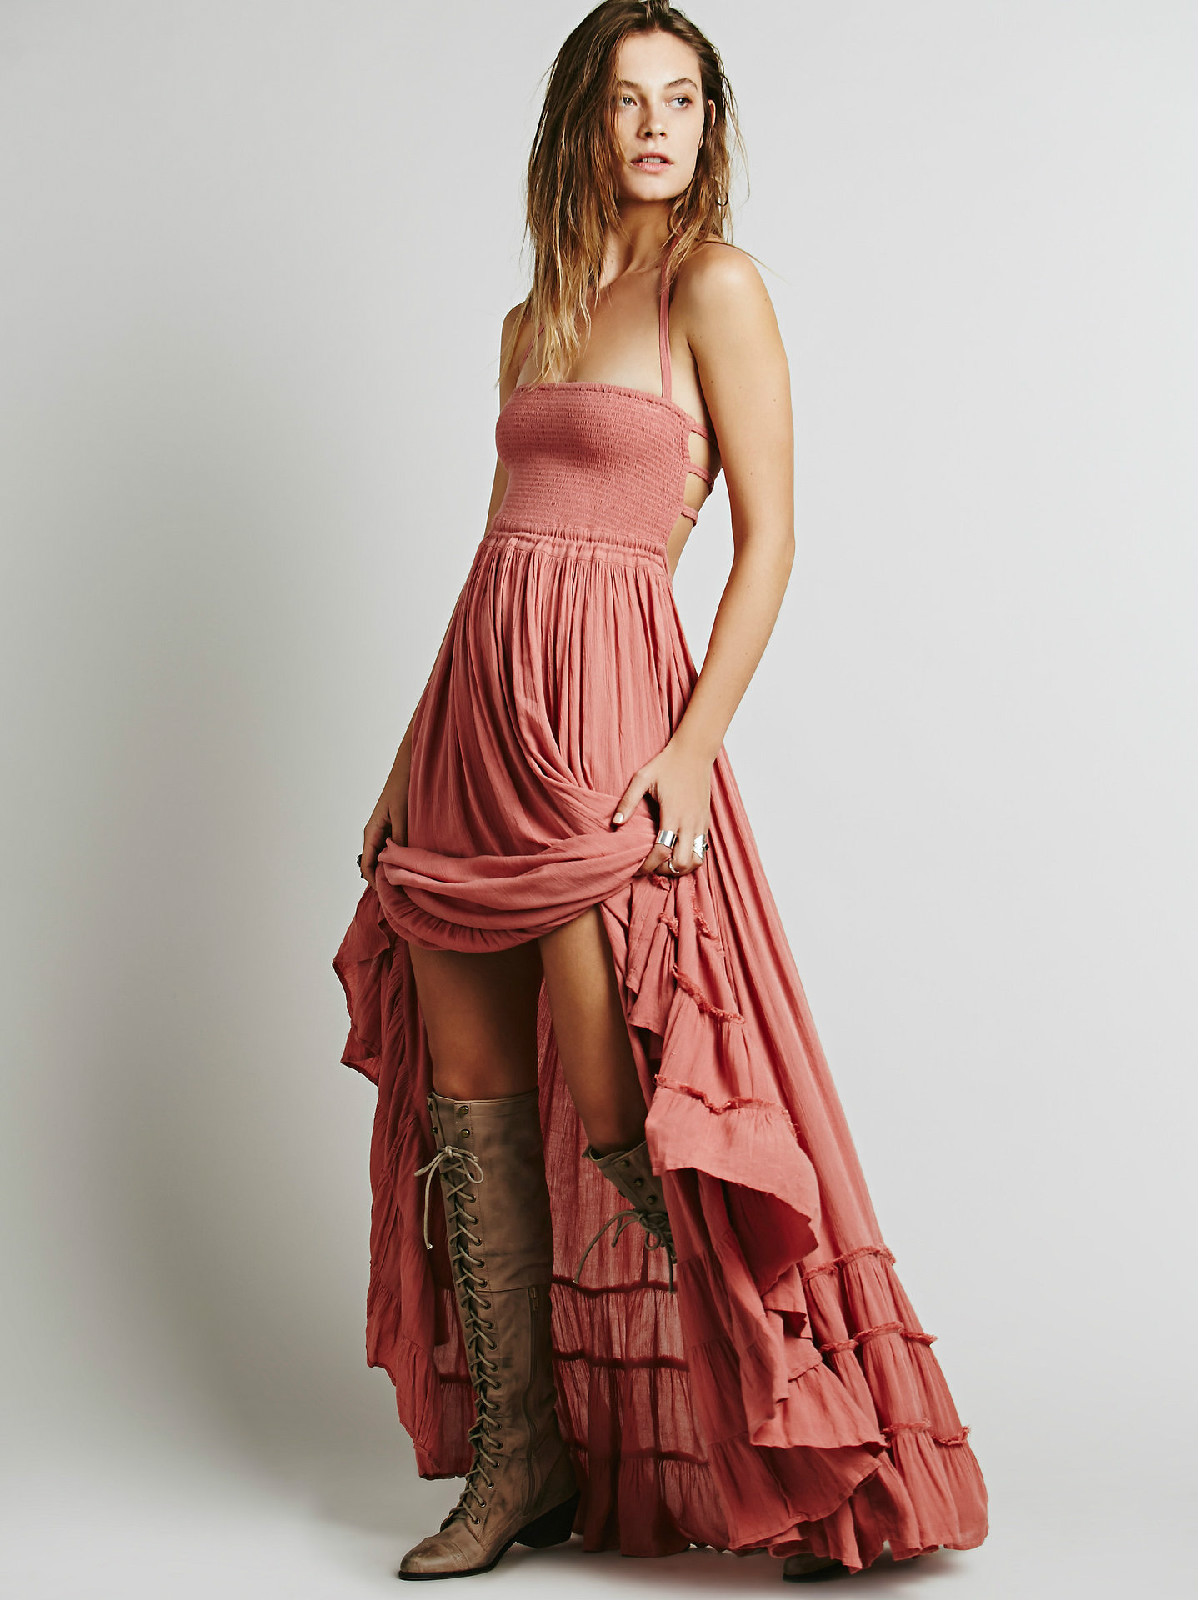 Backless Strapless Long Dress